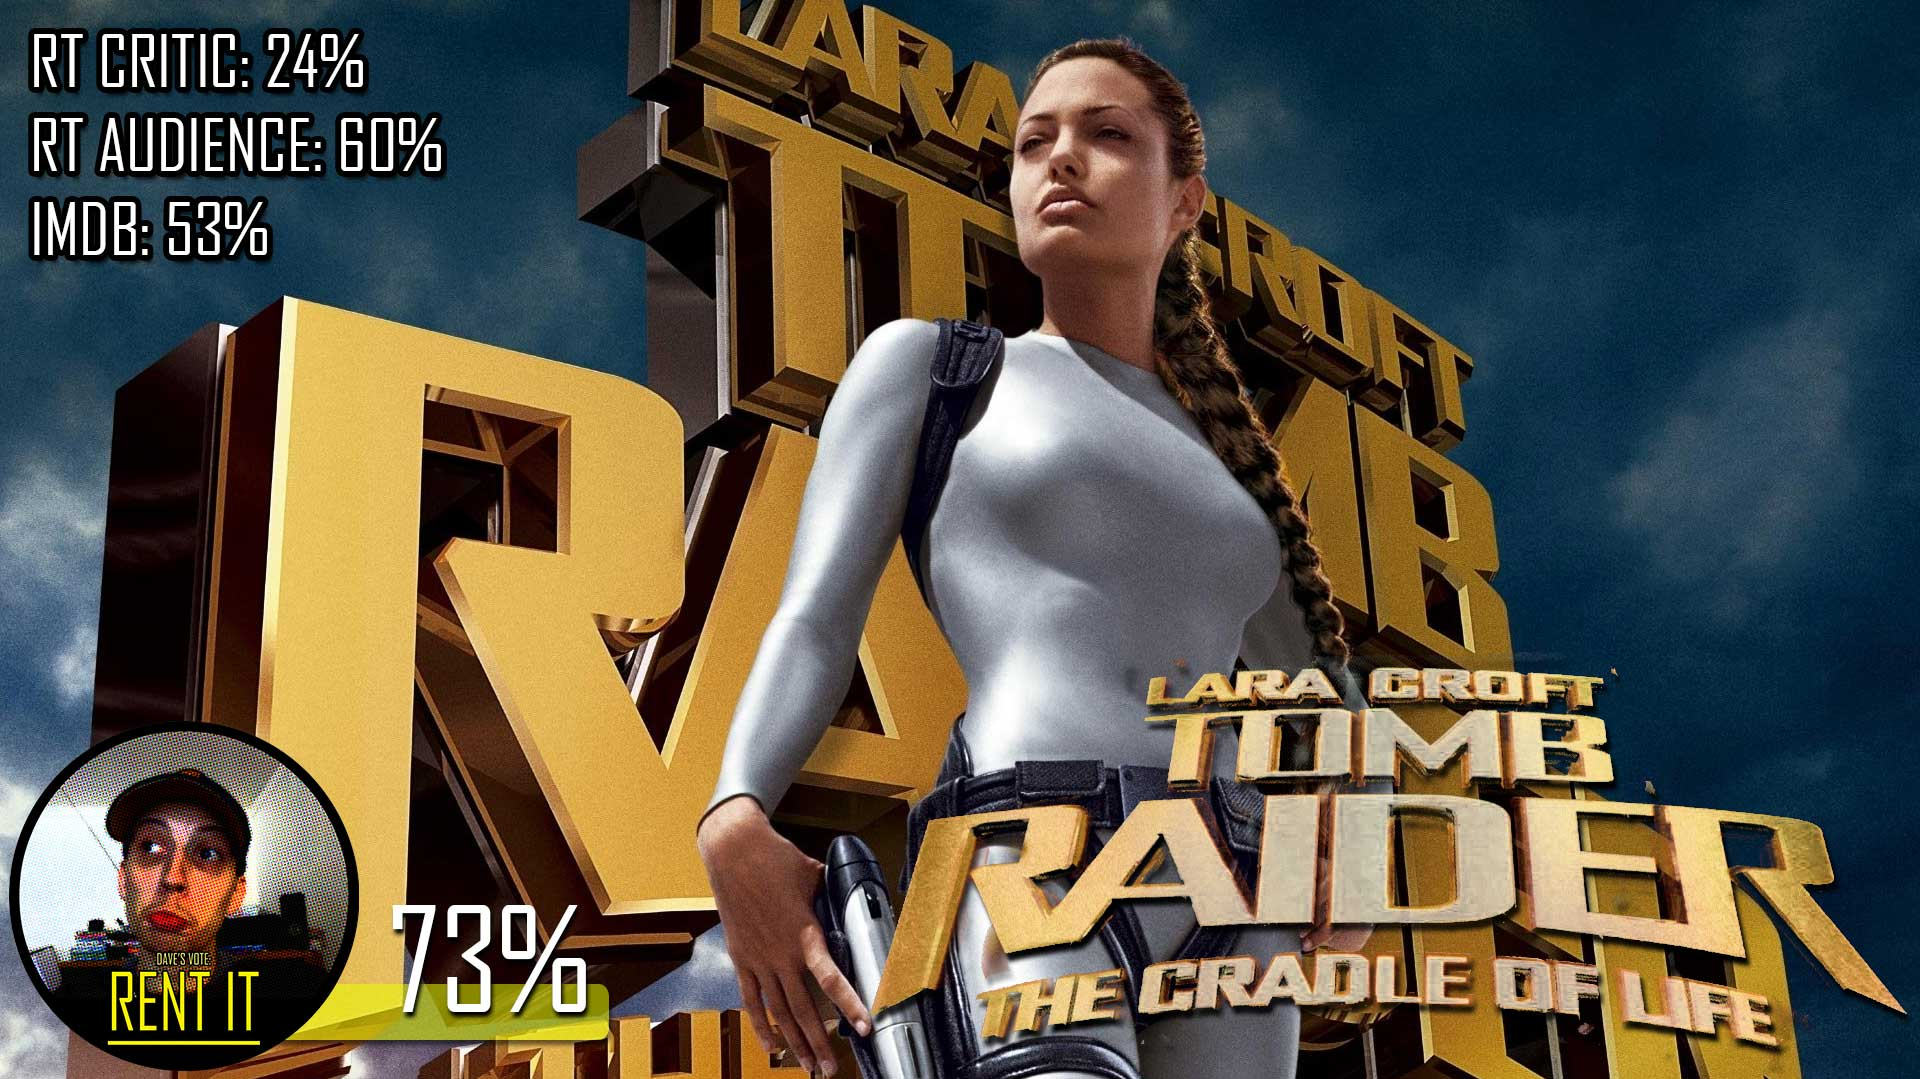 Lara Croft Tomb Raider The Cradle Of Life Wallpapers Movie Hq